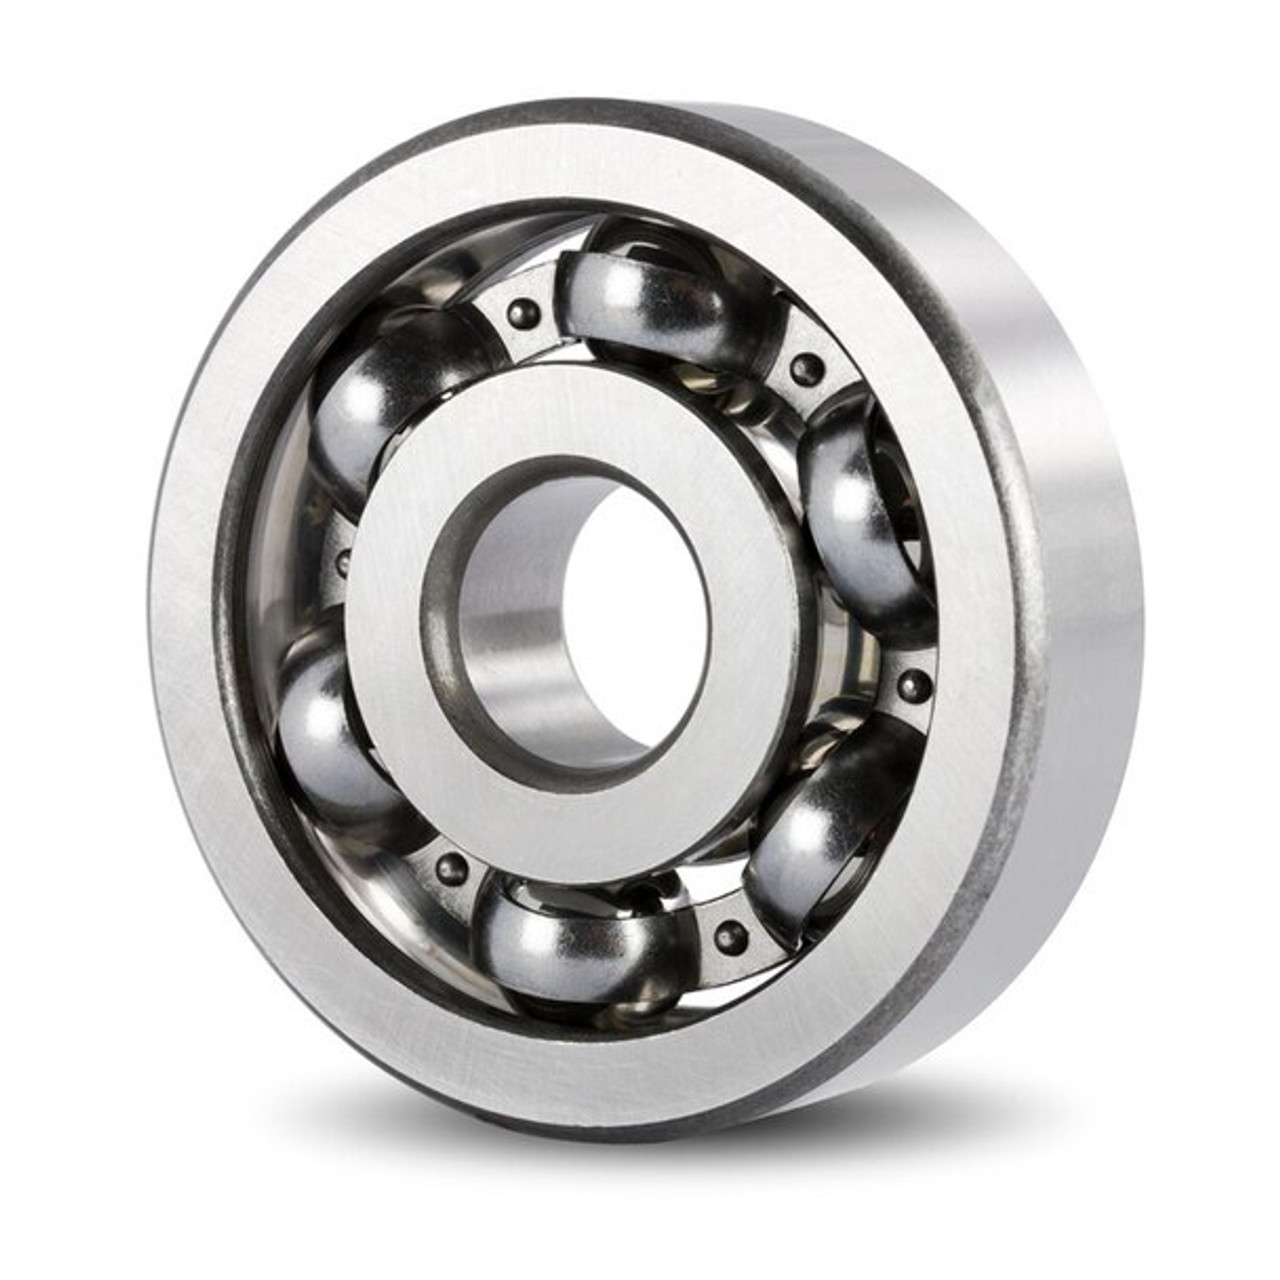 NTN 5204 Double Row Angular Contact Bearing